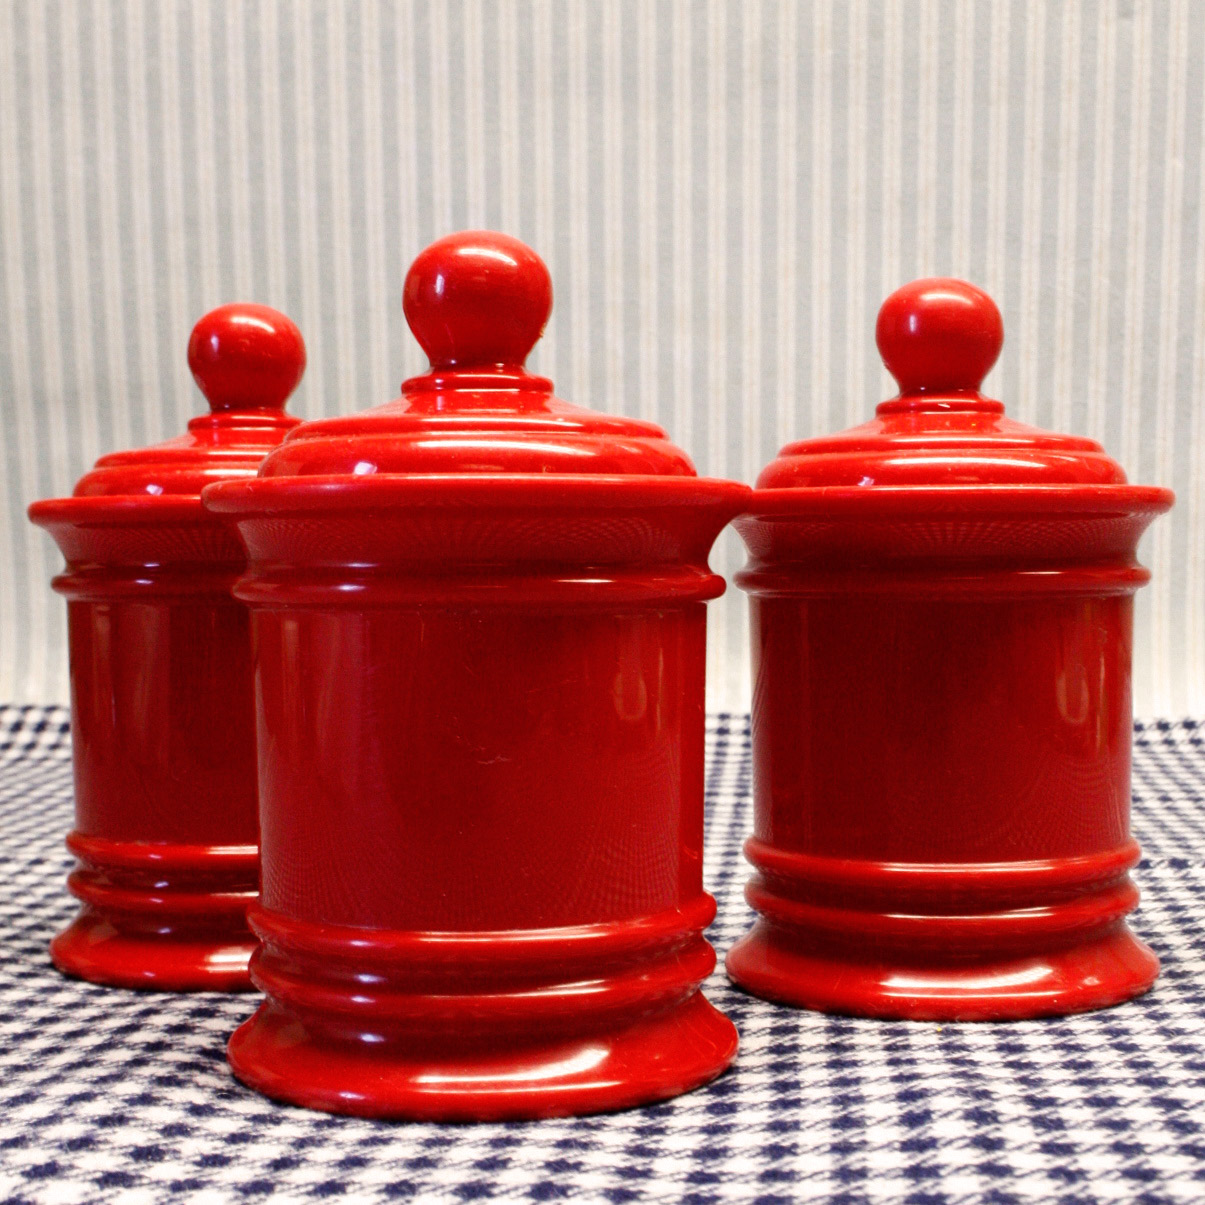 La puce au grenier d coration vintage lot 3 pots de cuisine for Pots cuisine decoration